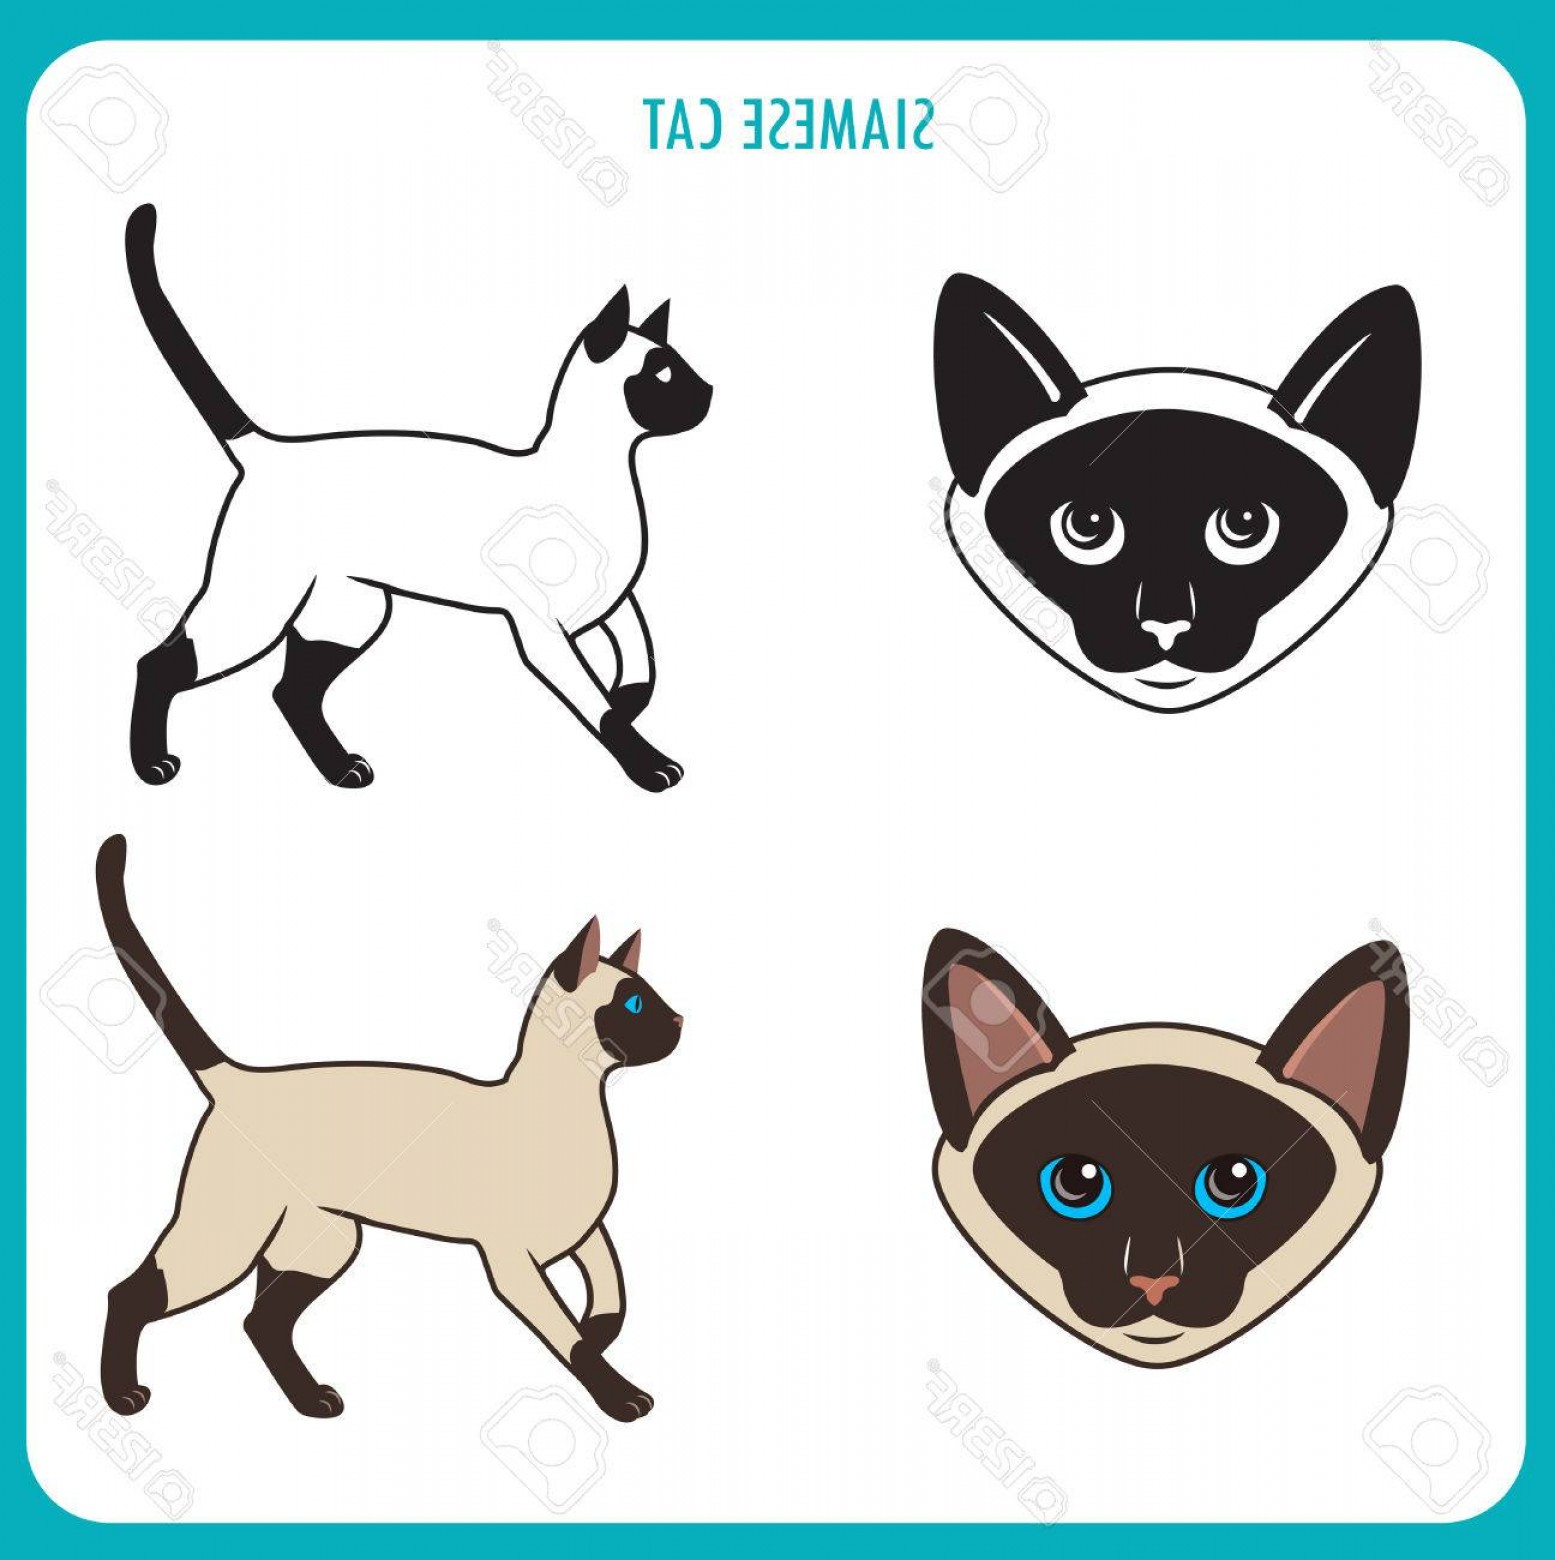 Siamese Cat Vector Transparent Background: Photostock Vector Siamese Cat Set Face And Body Vector On A White Background Siamese Cat Vector Illustration Siamese C